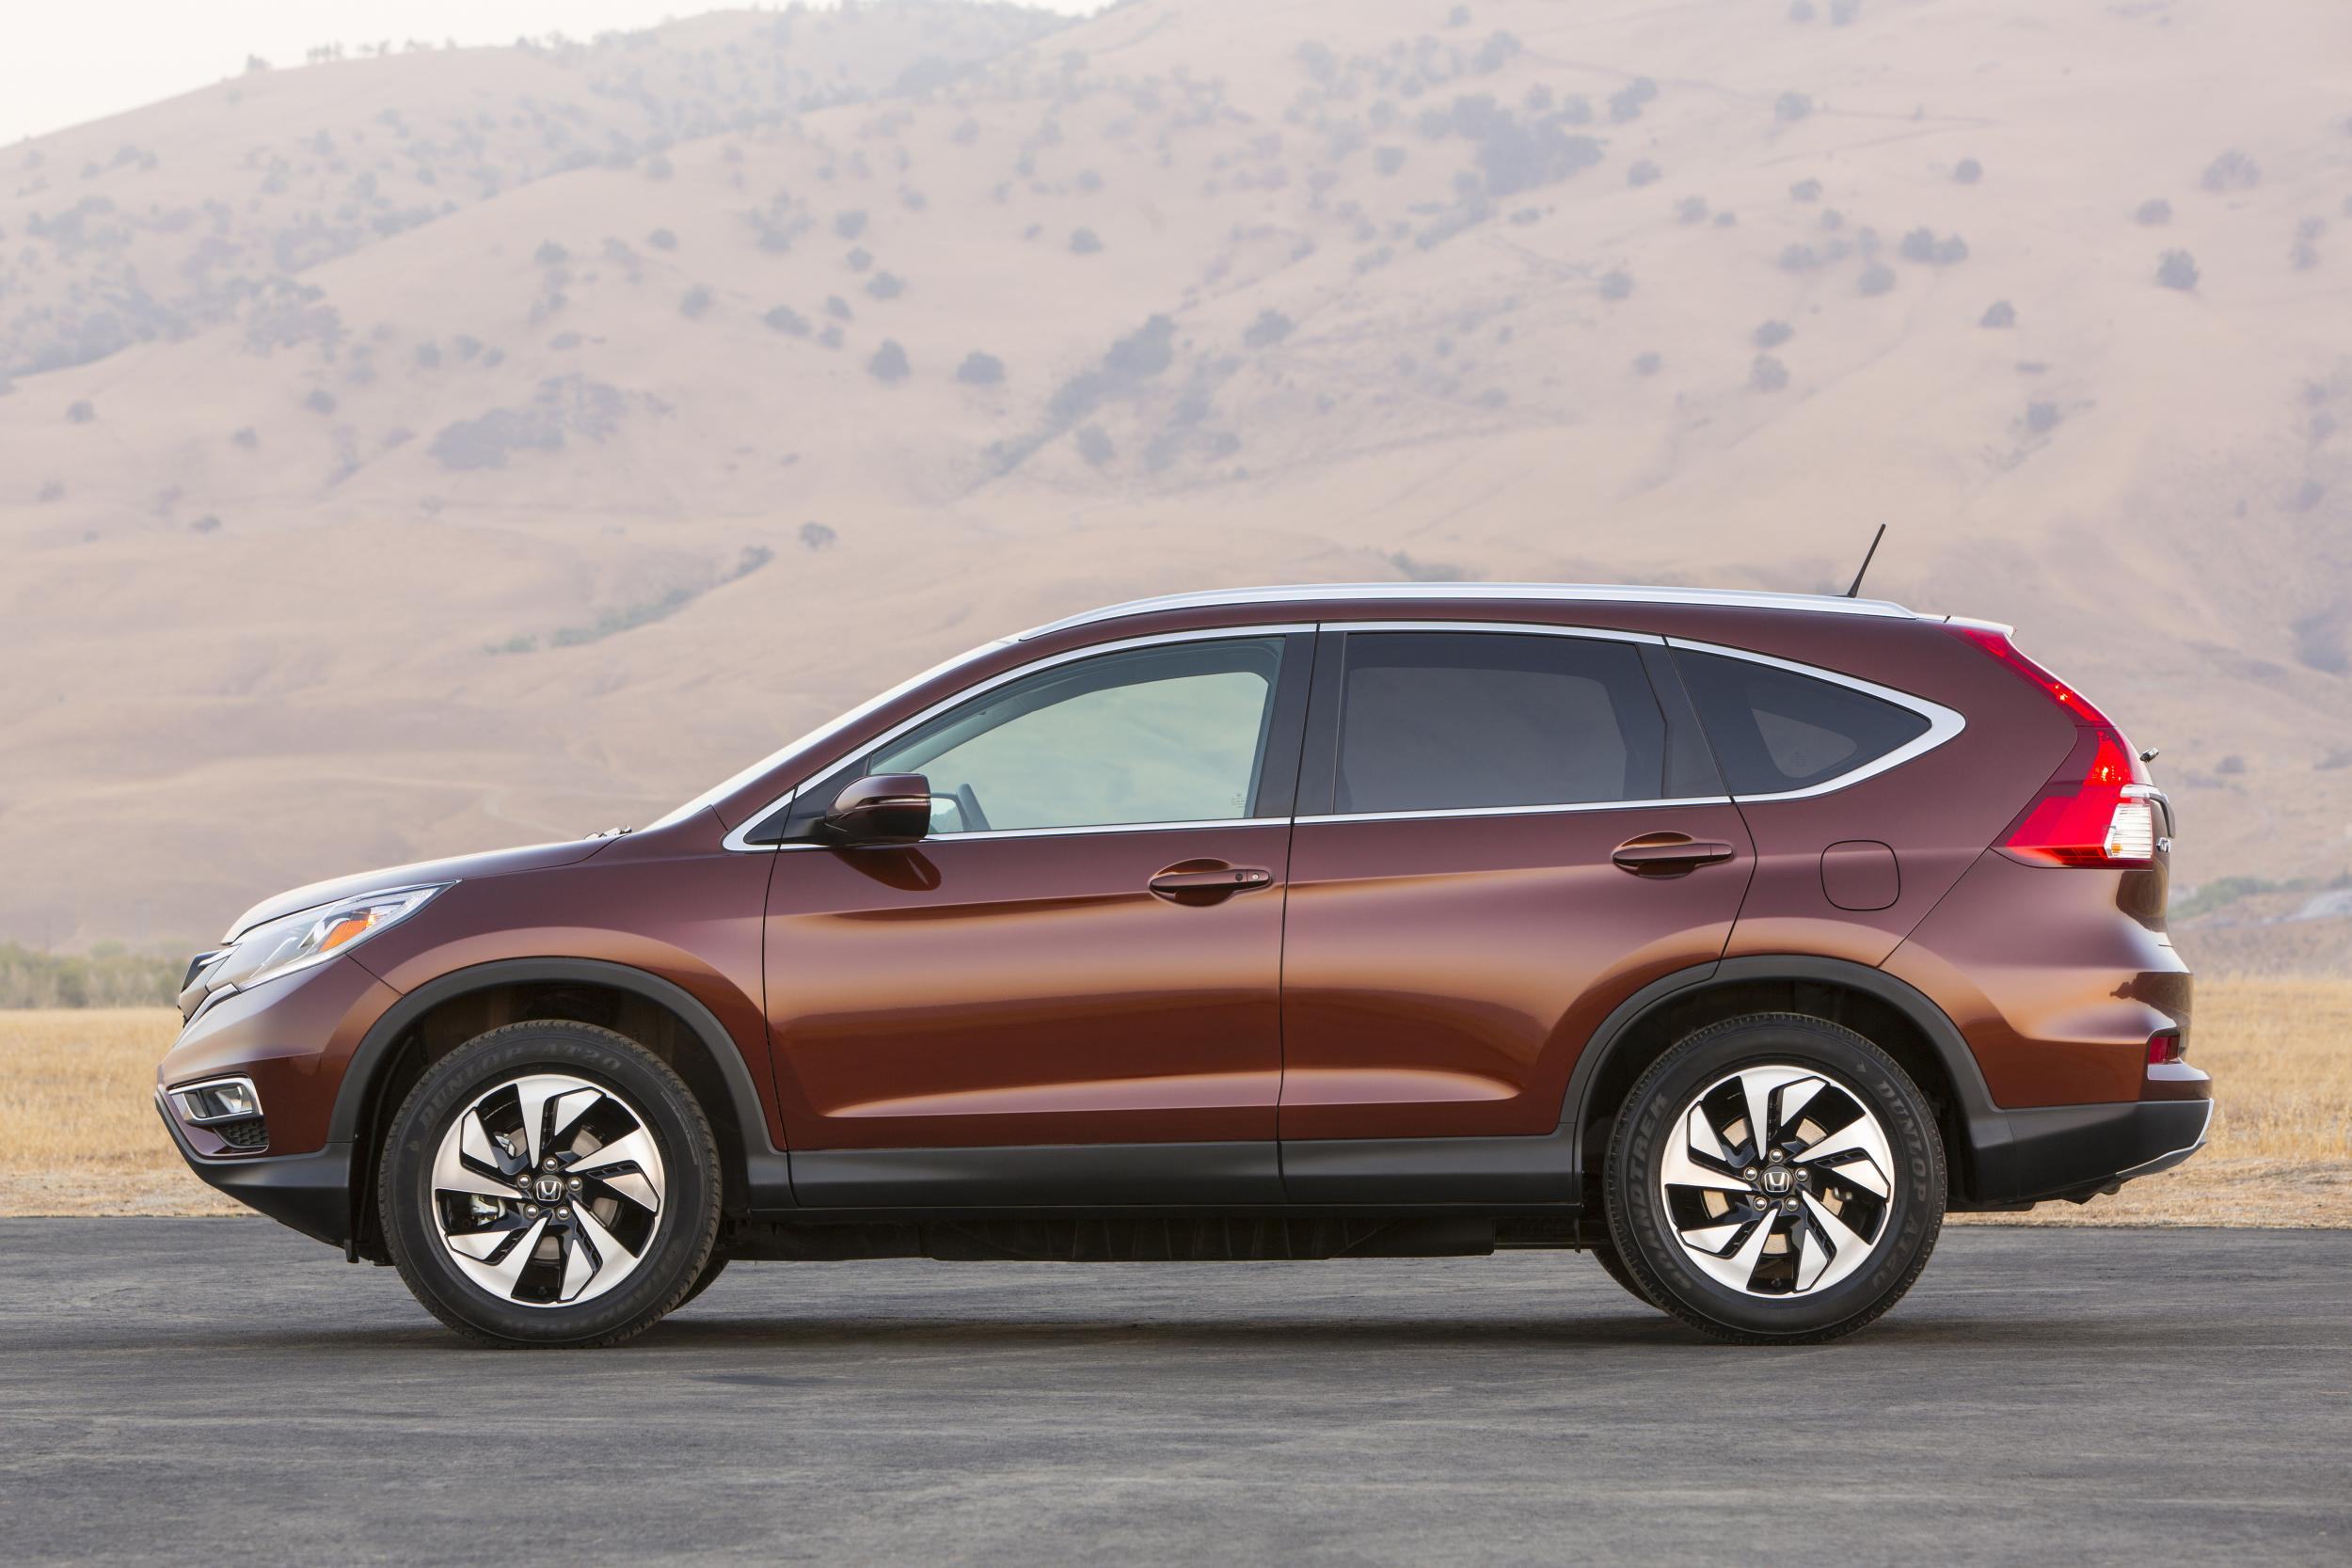 Honda Civic Coupe For Sale >> 2015 Honda CR-V Facelift Pricing, Specifications Announced - autoevolution